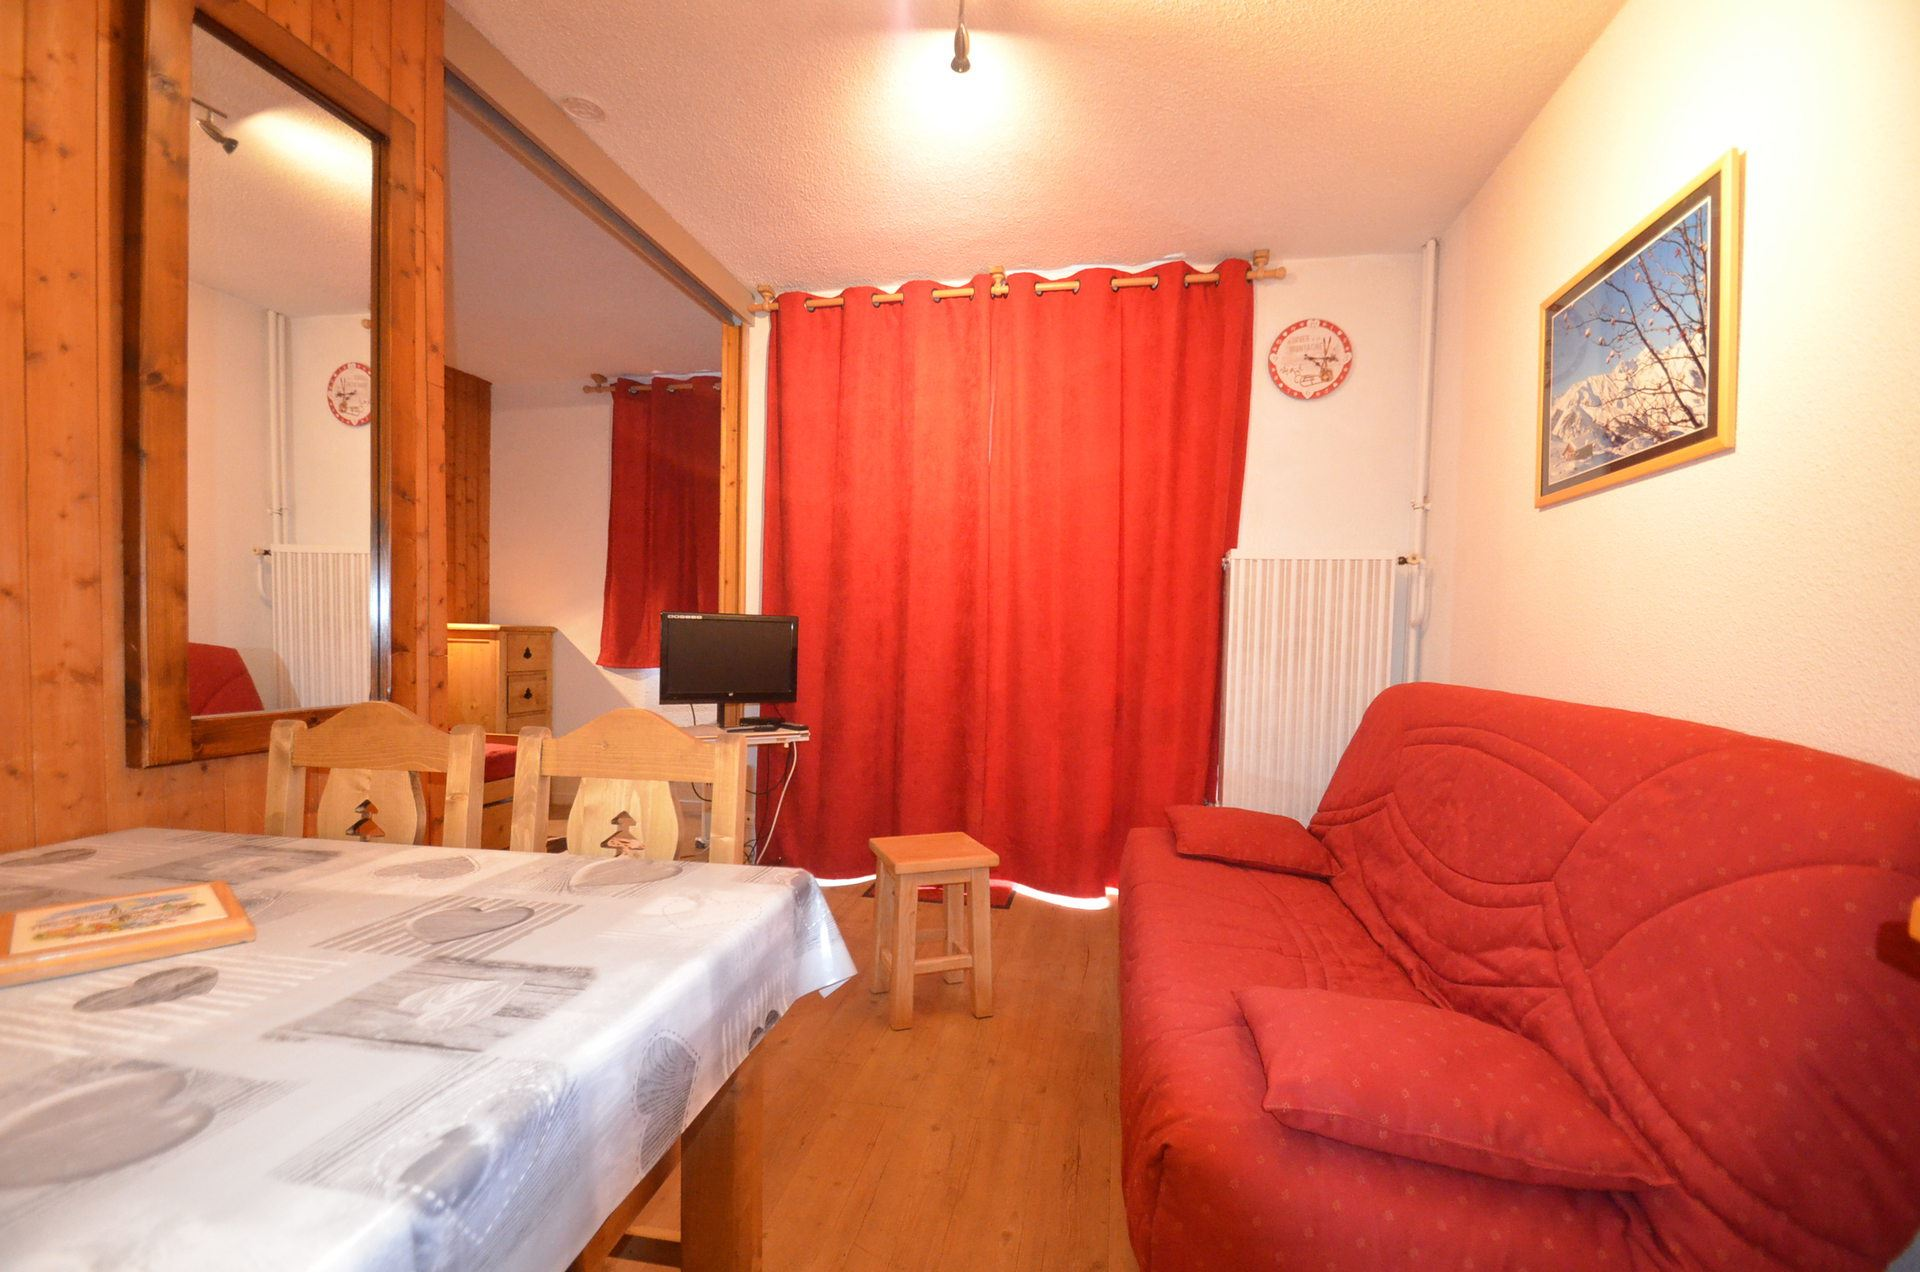 2 Rooms 4 Pers ski-in ski-out / JETAY 76